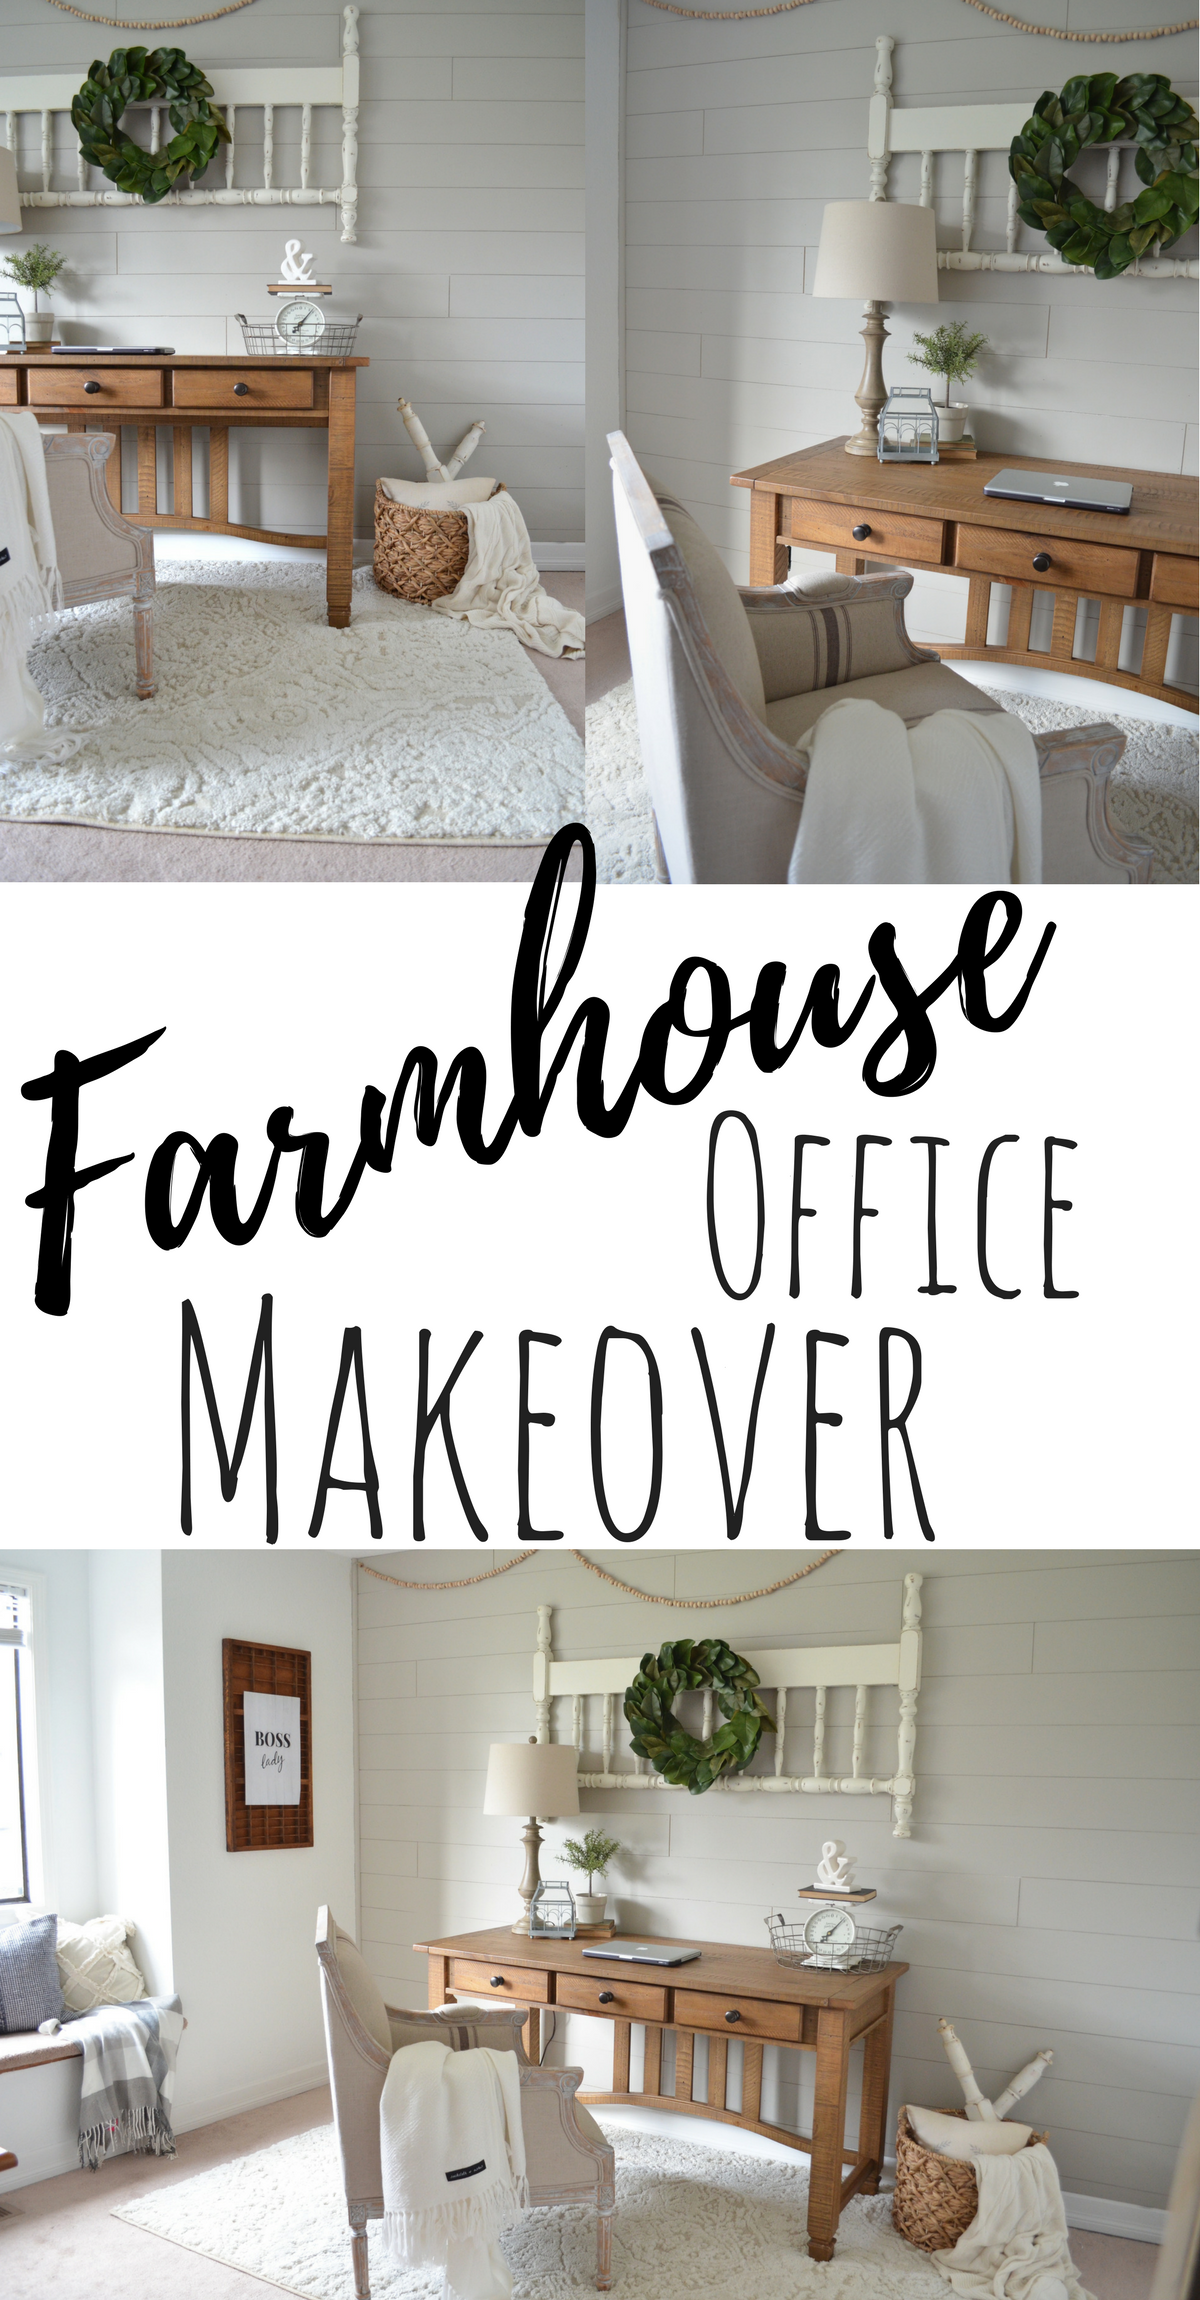 Farmhouse Office Makeover Farm Fresh Homestead